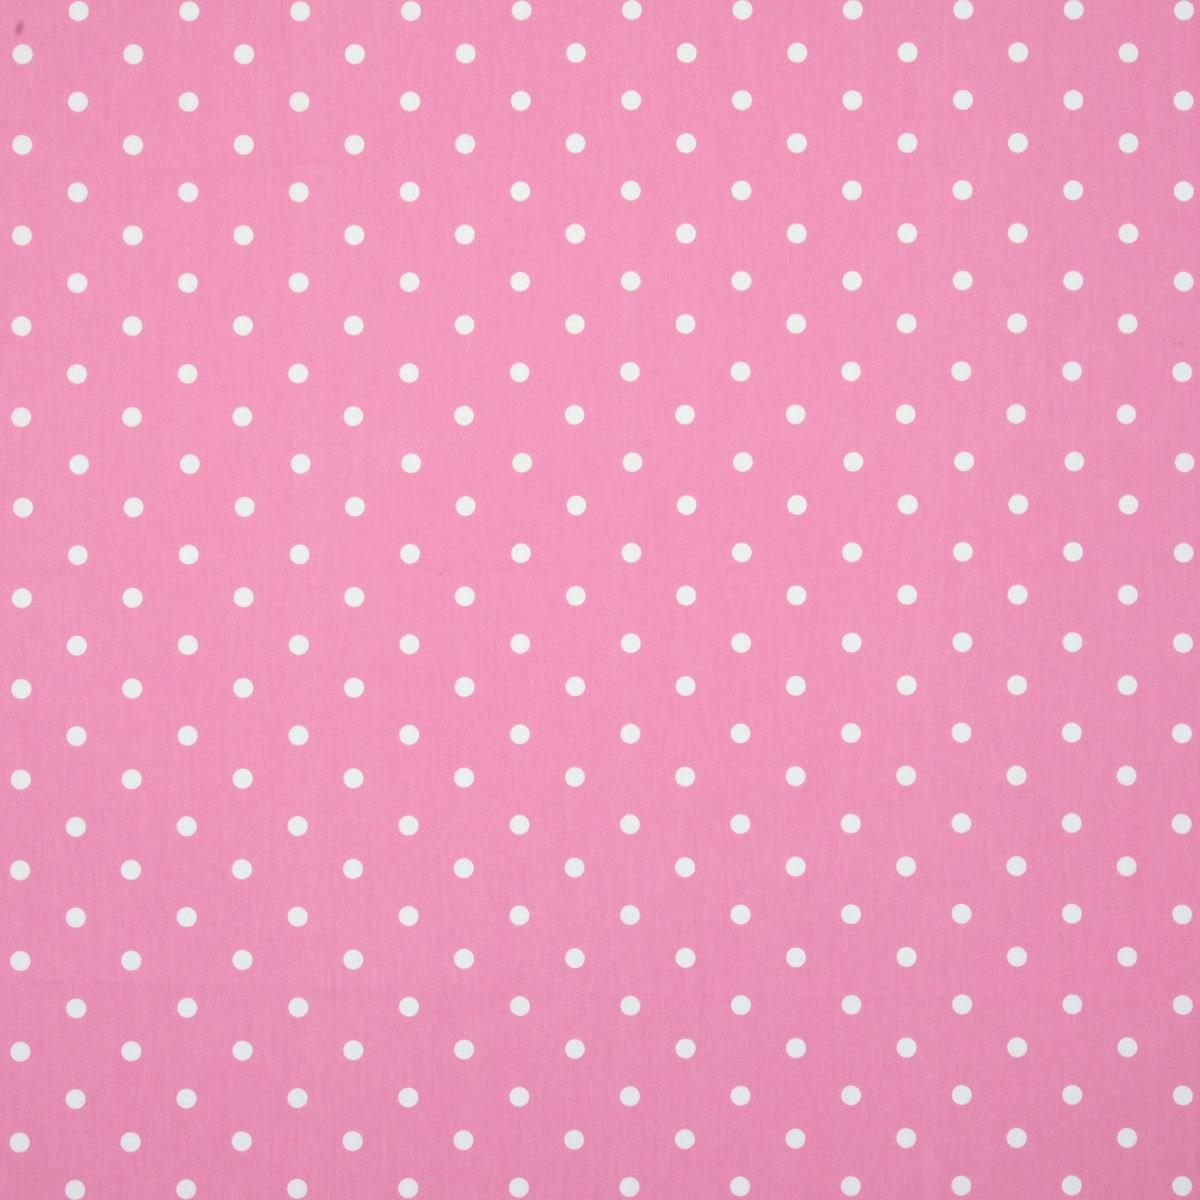 Polka Dot Curtain Fabric